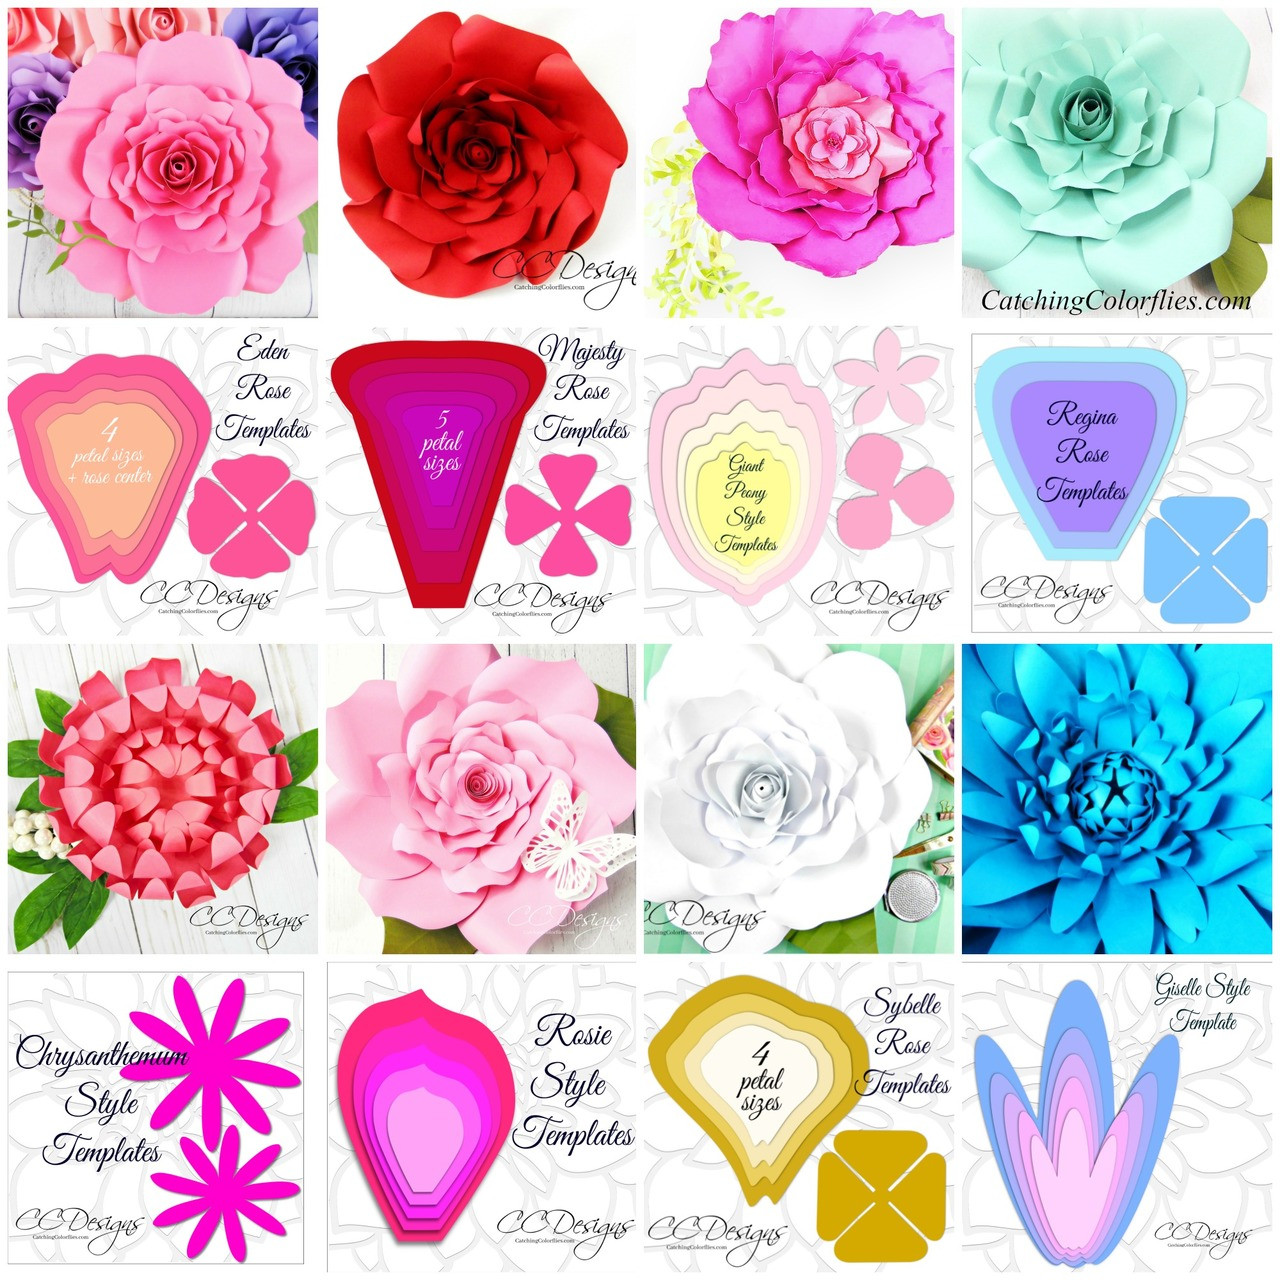 image relating to Flower Template Printable named Huge Flower Template Fastened of 16 Flower Templates, additionally Leaves, and Facilities